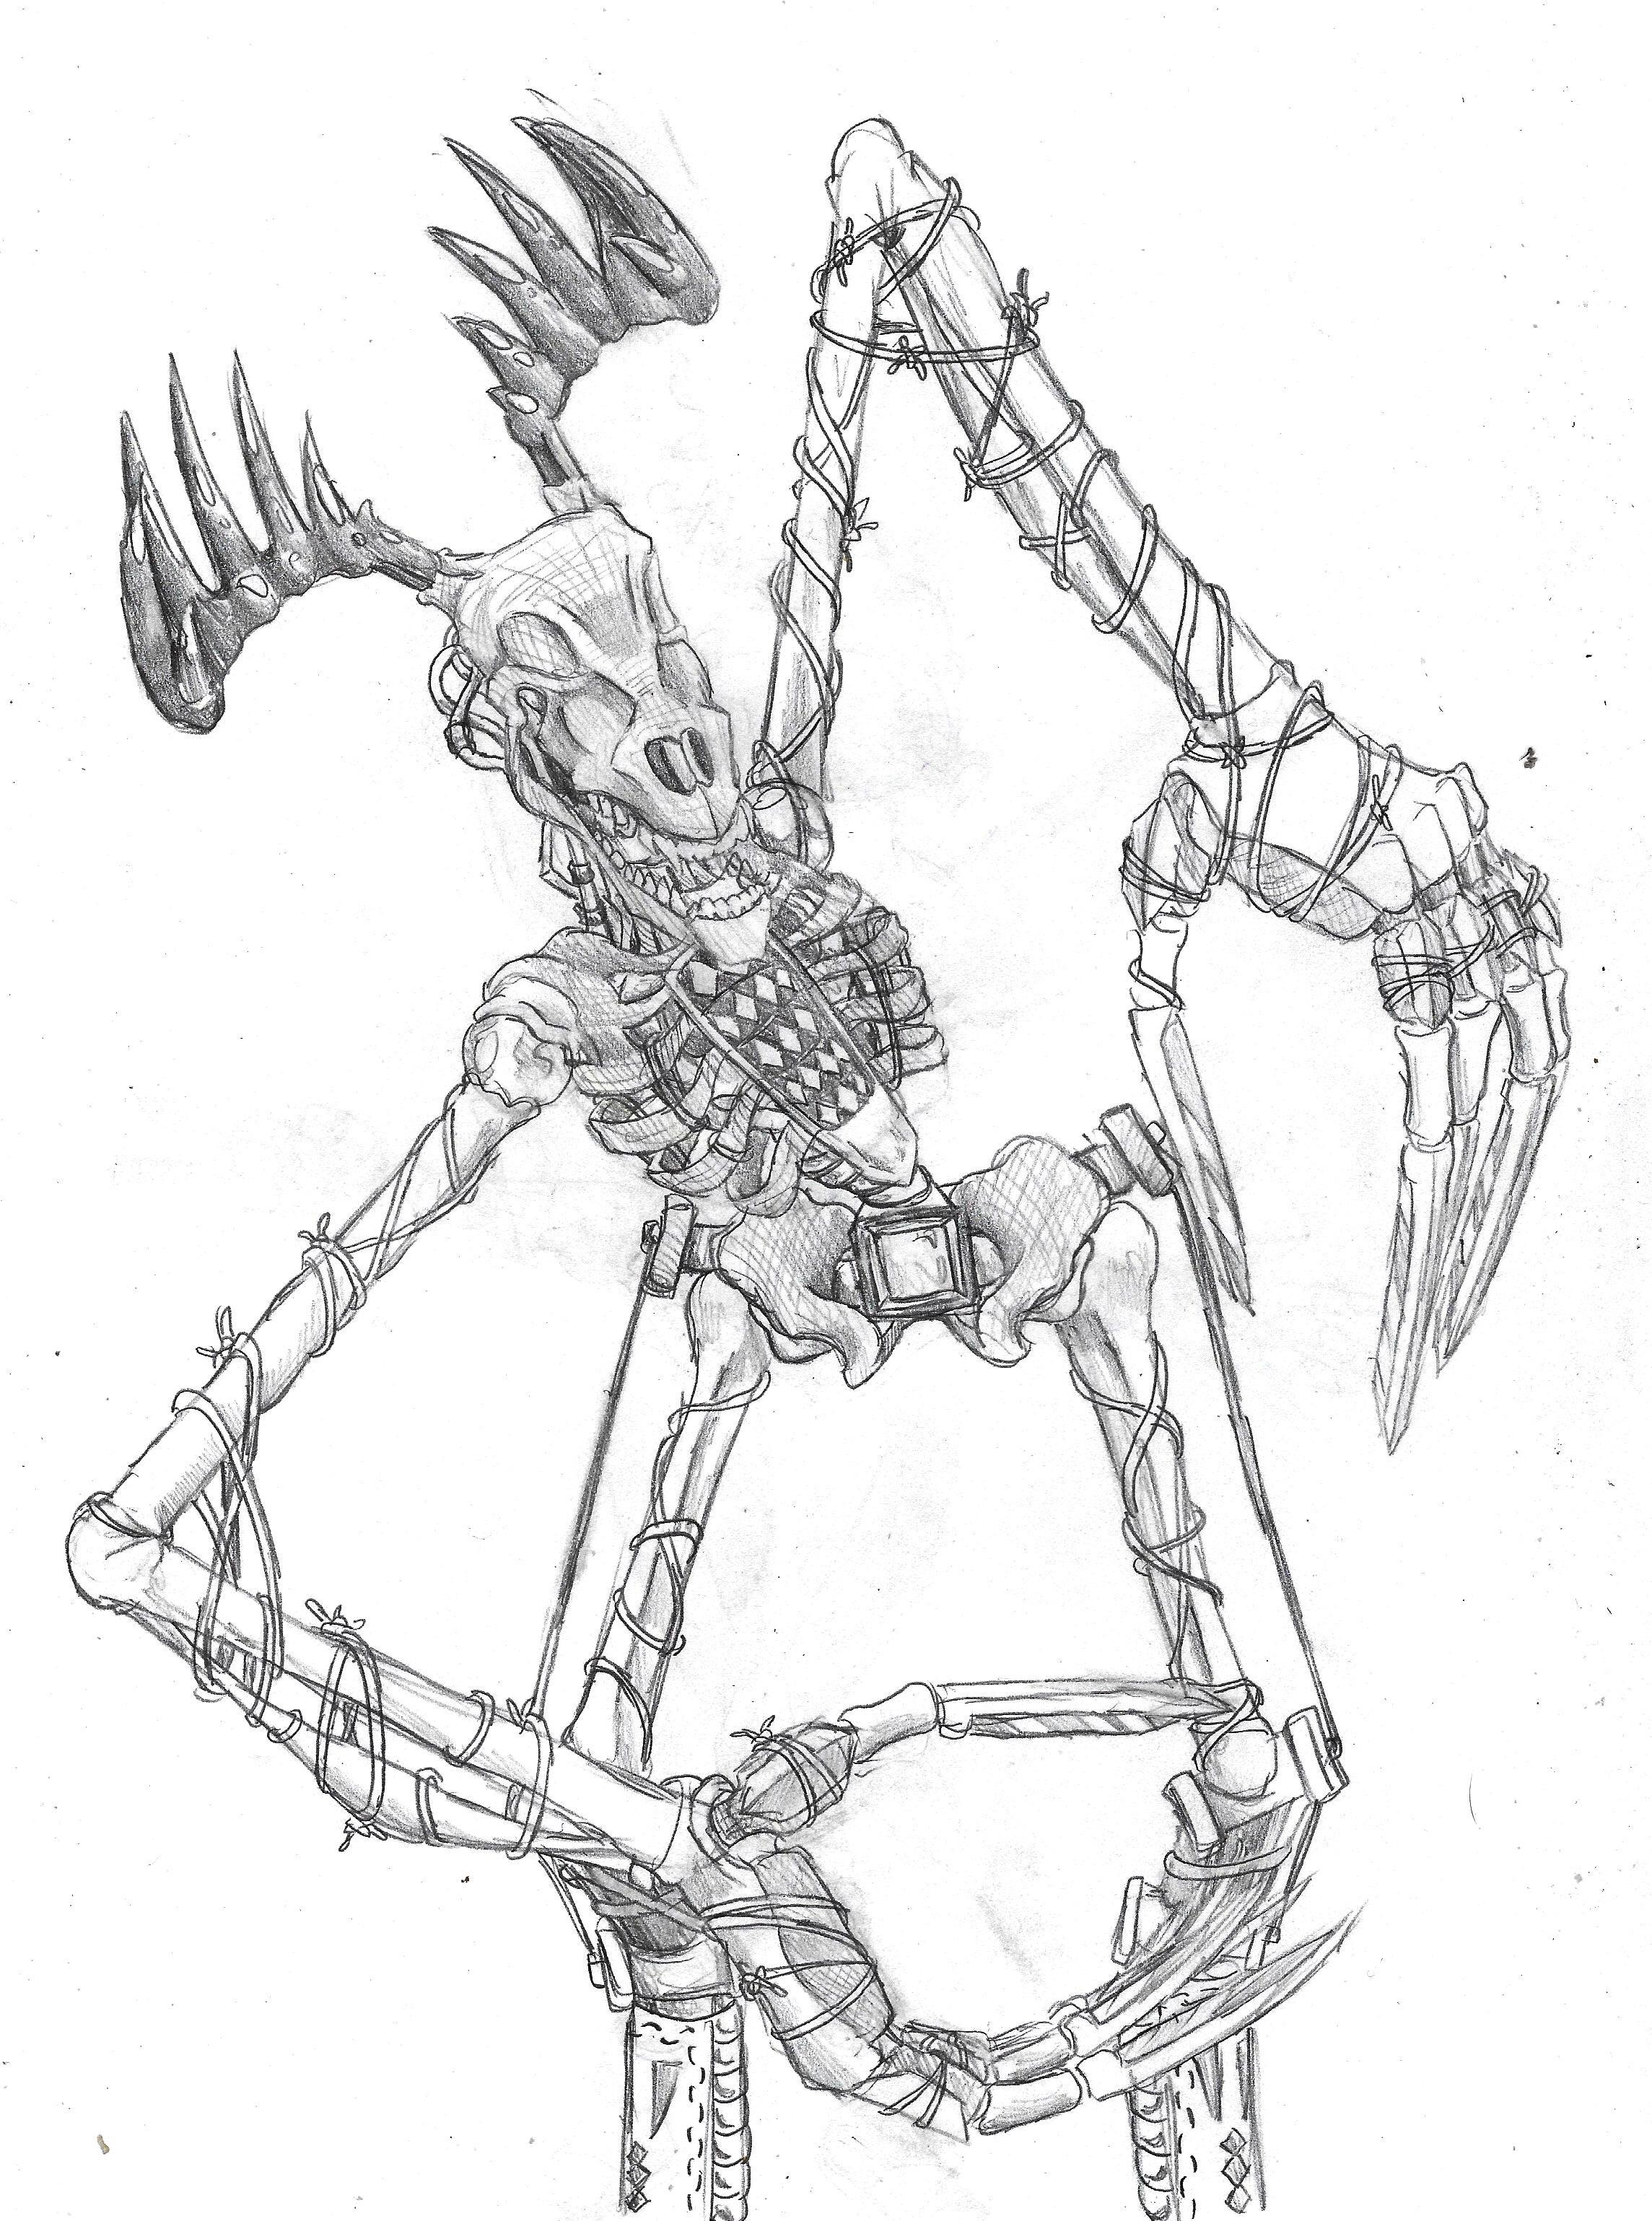 Art Of Deadline From Popgoes 2 Made By The Amazing U